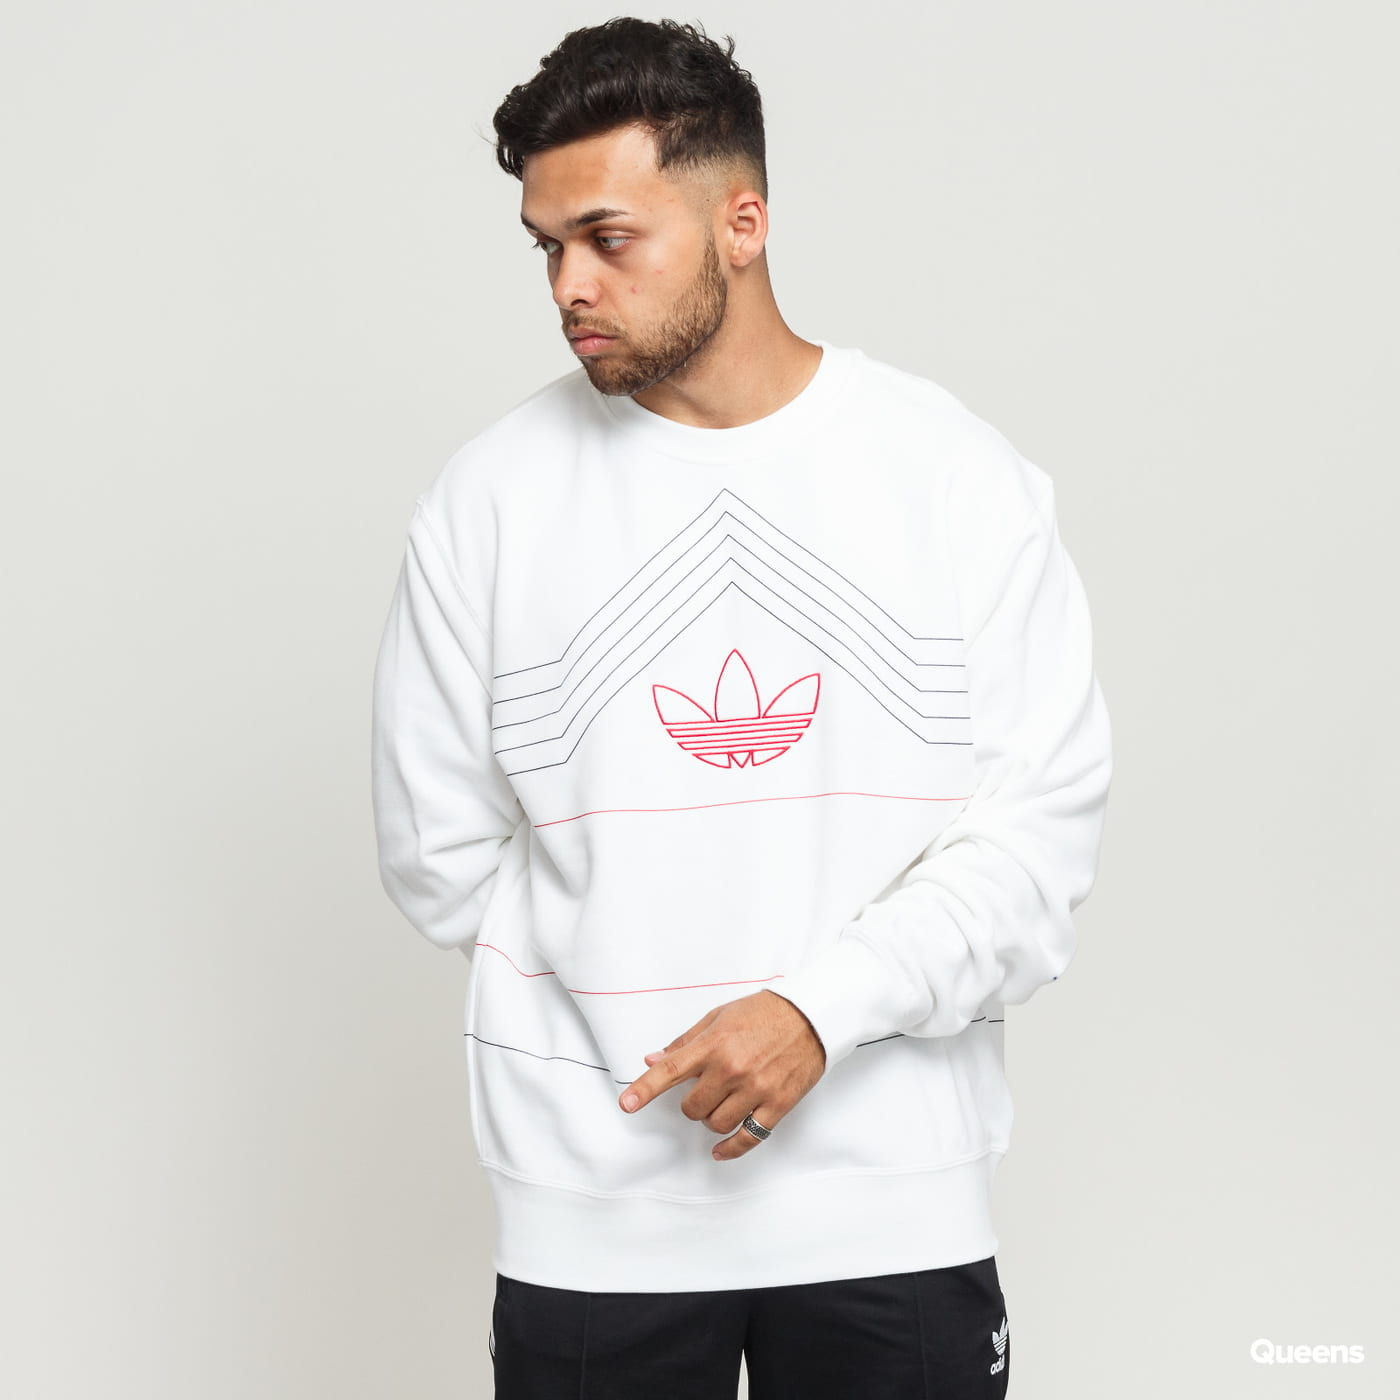 ascolto la musica Gallo mitologia  Sweatshirt / Hoodie adidas Originals Rivalry Crew white (ED5660) – Queens 💚